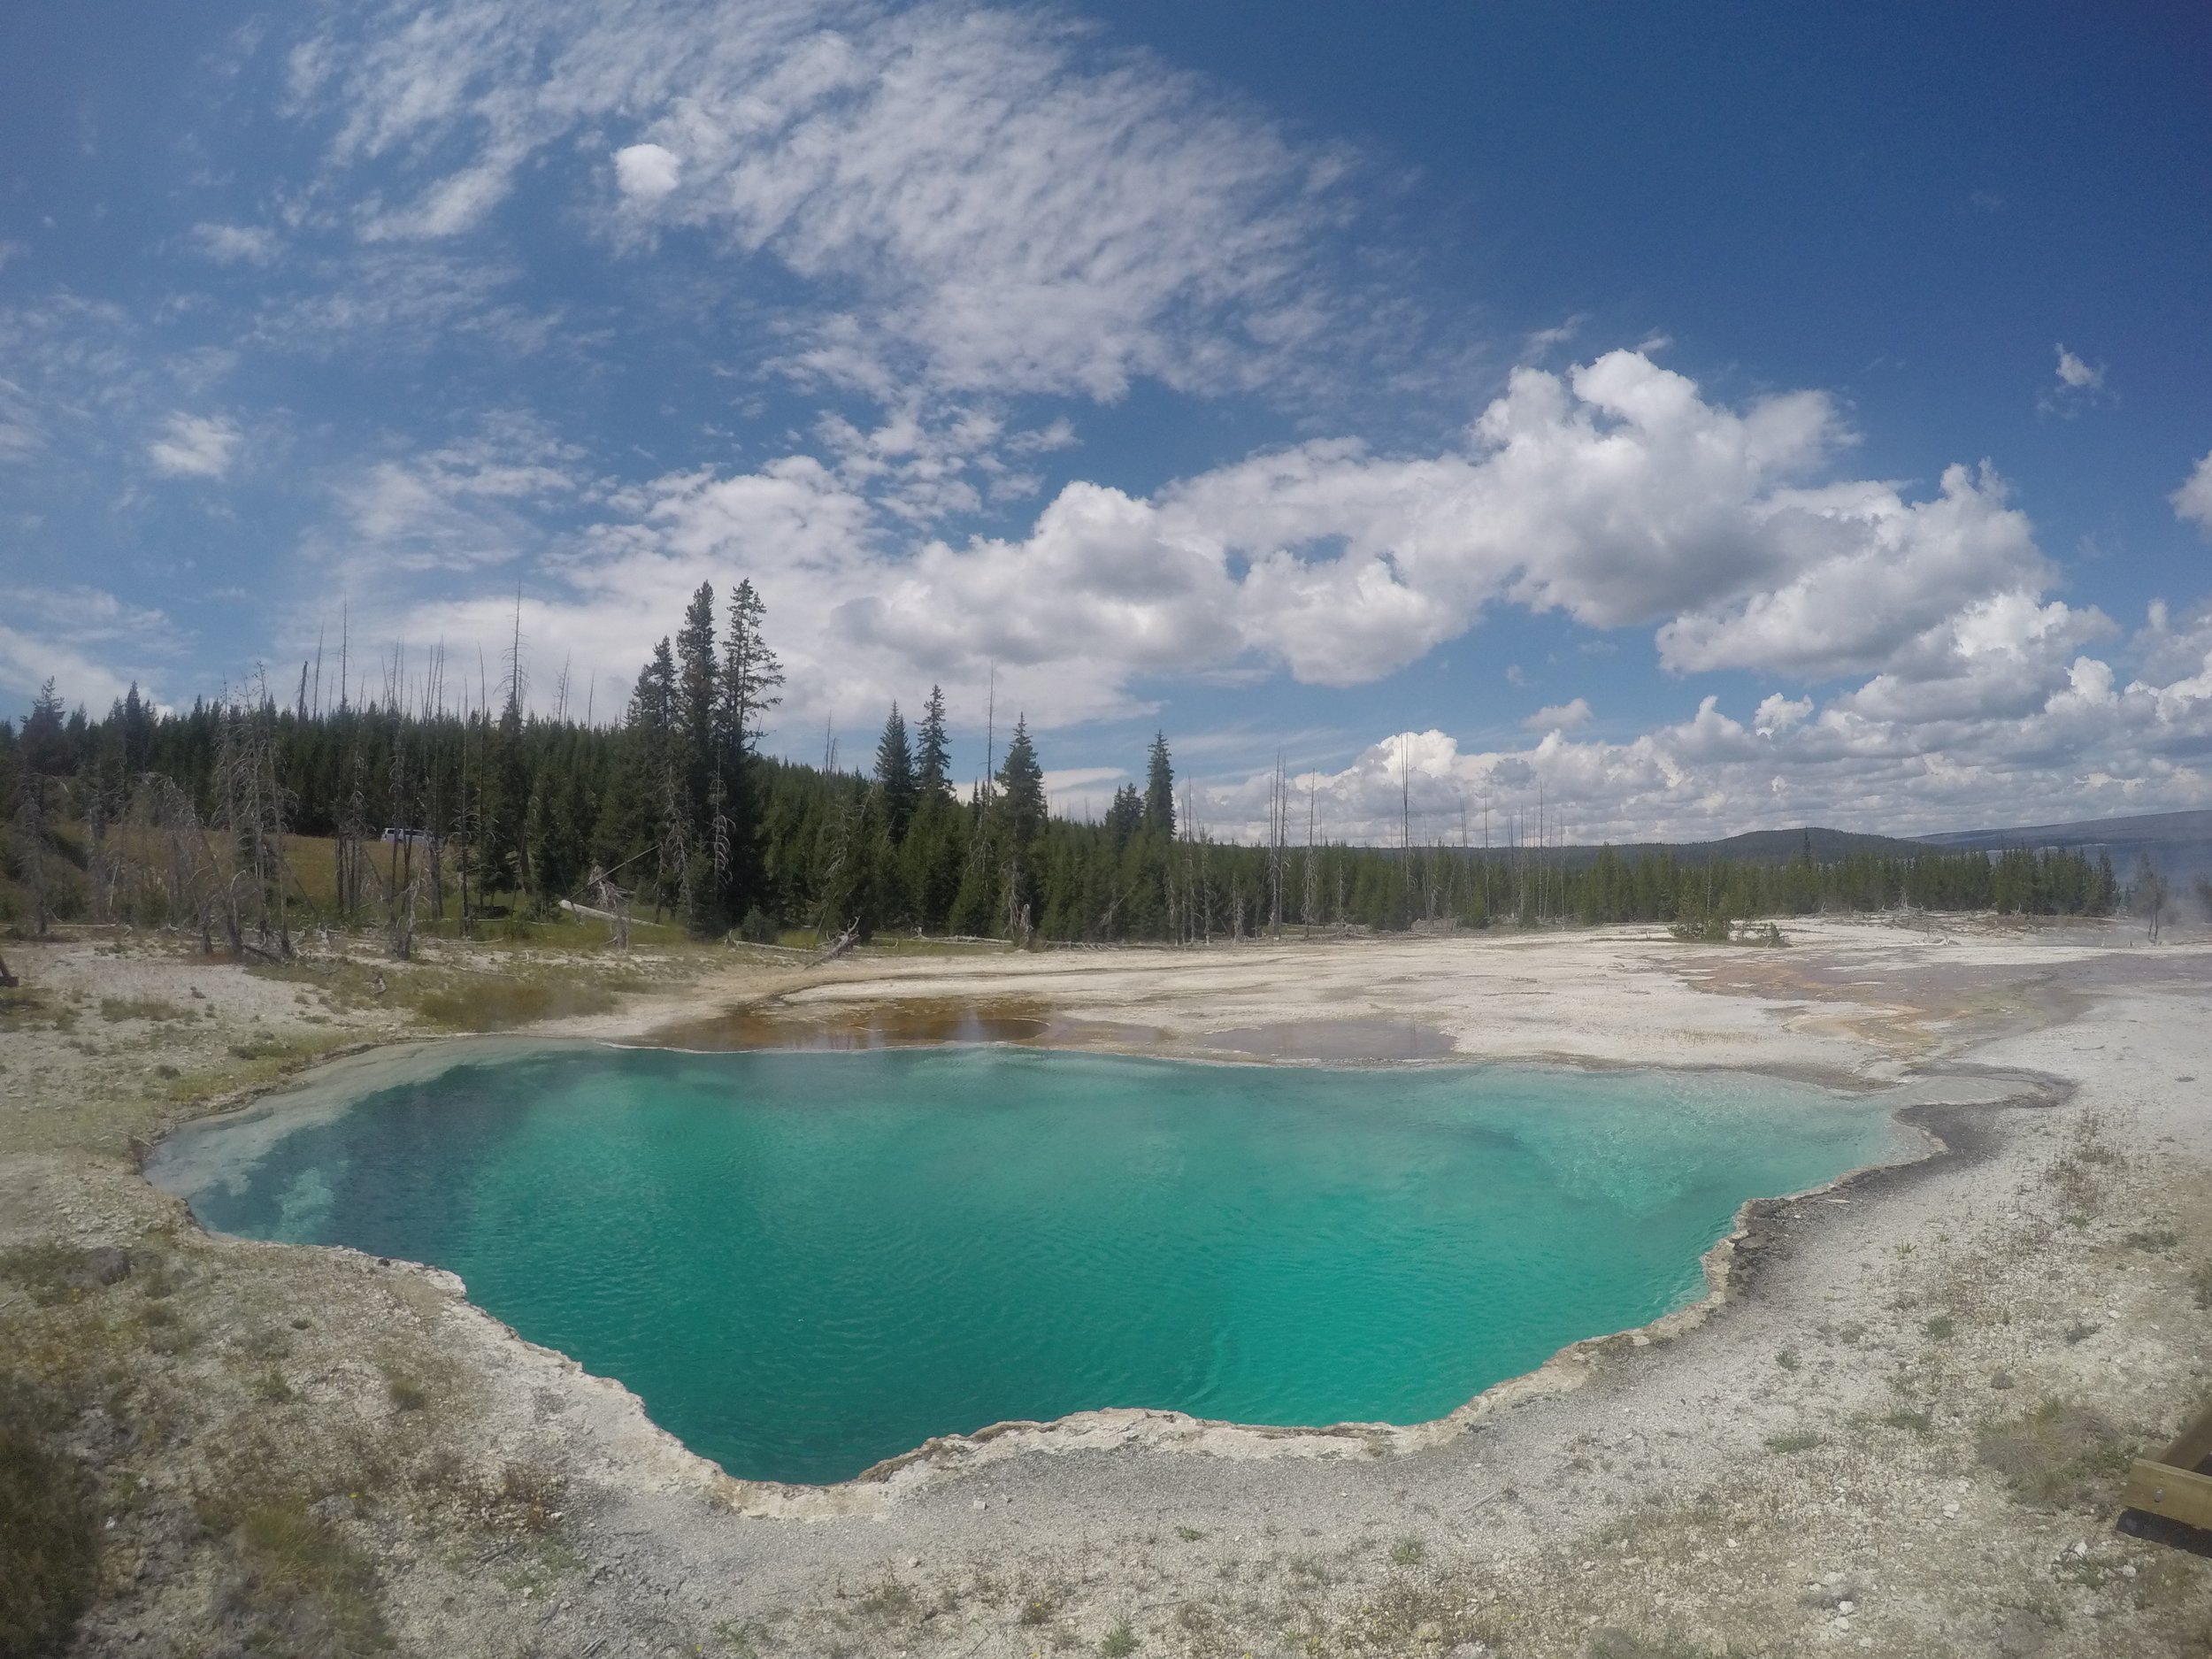 Just one of many amazing thermal pools in Yellowstone